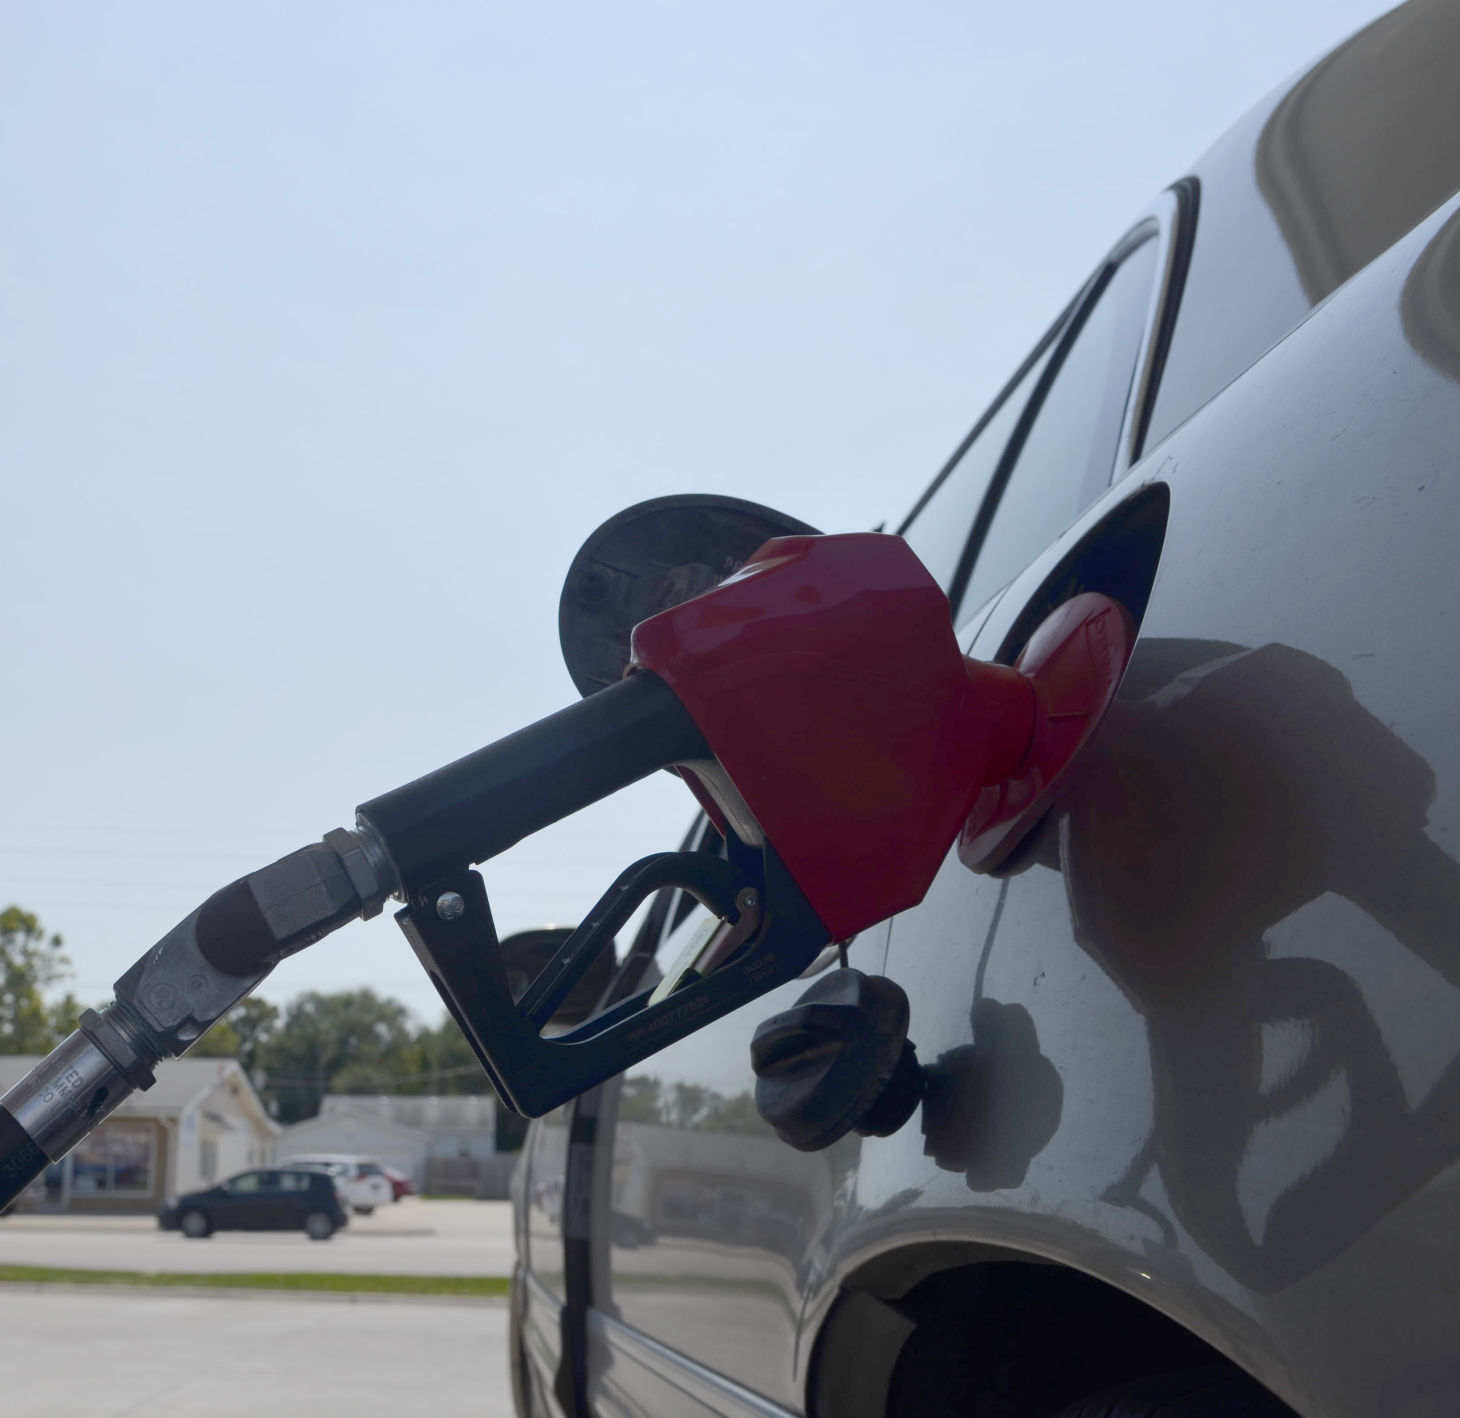 Gas prices spike again, now up 17 cents since Harvey